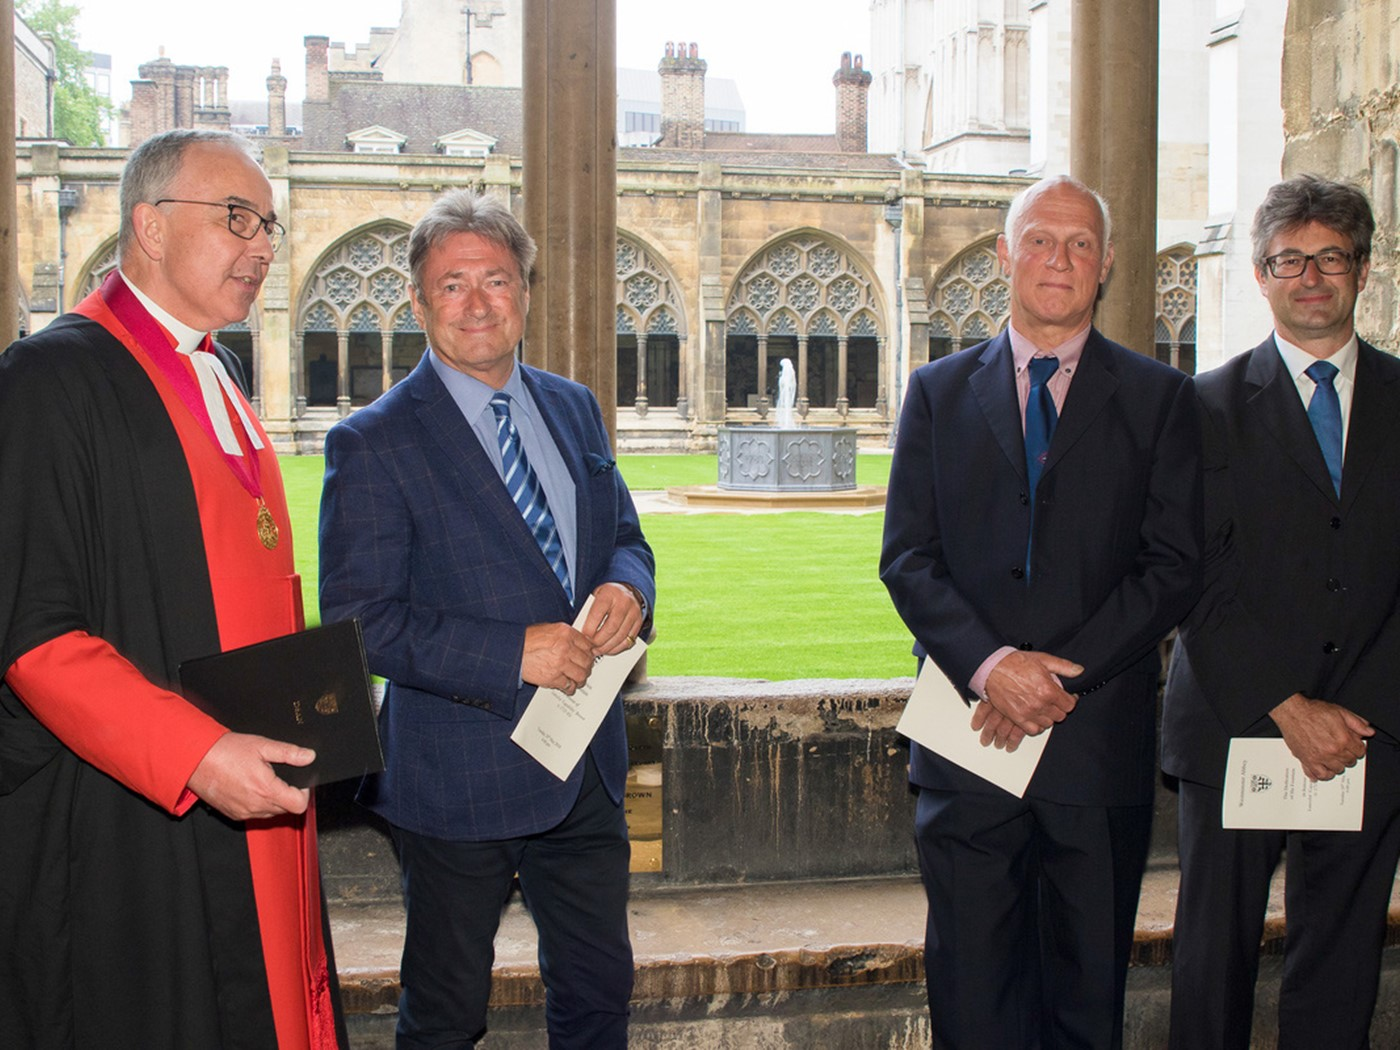 The Dean of Westminster with Alan Titchmarsh, Brian Turner and Ptolemy Dean